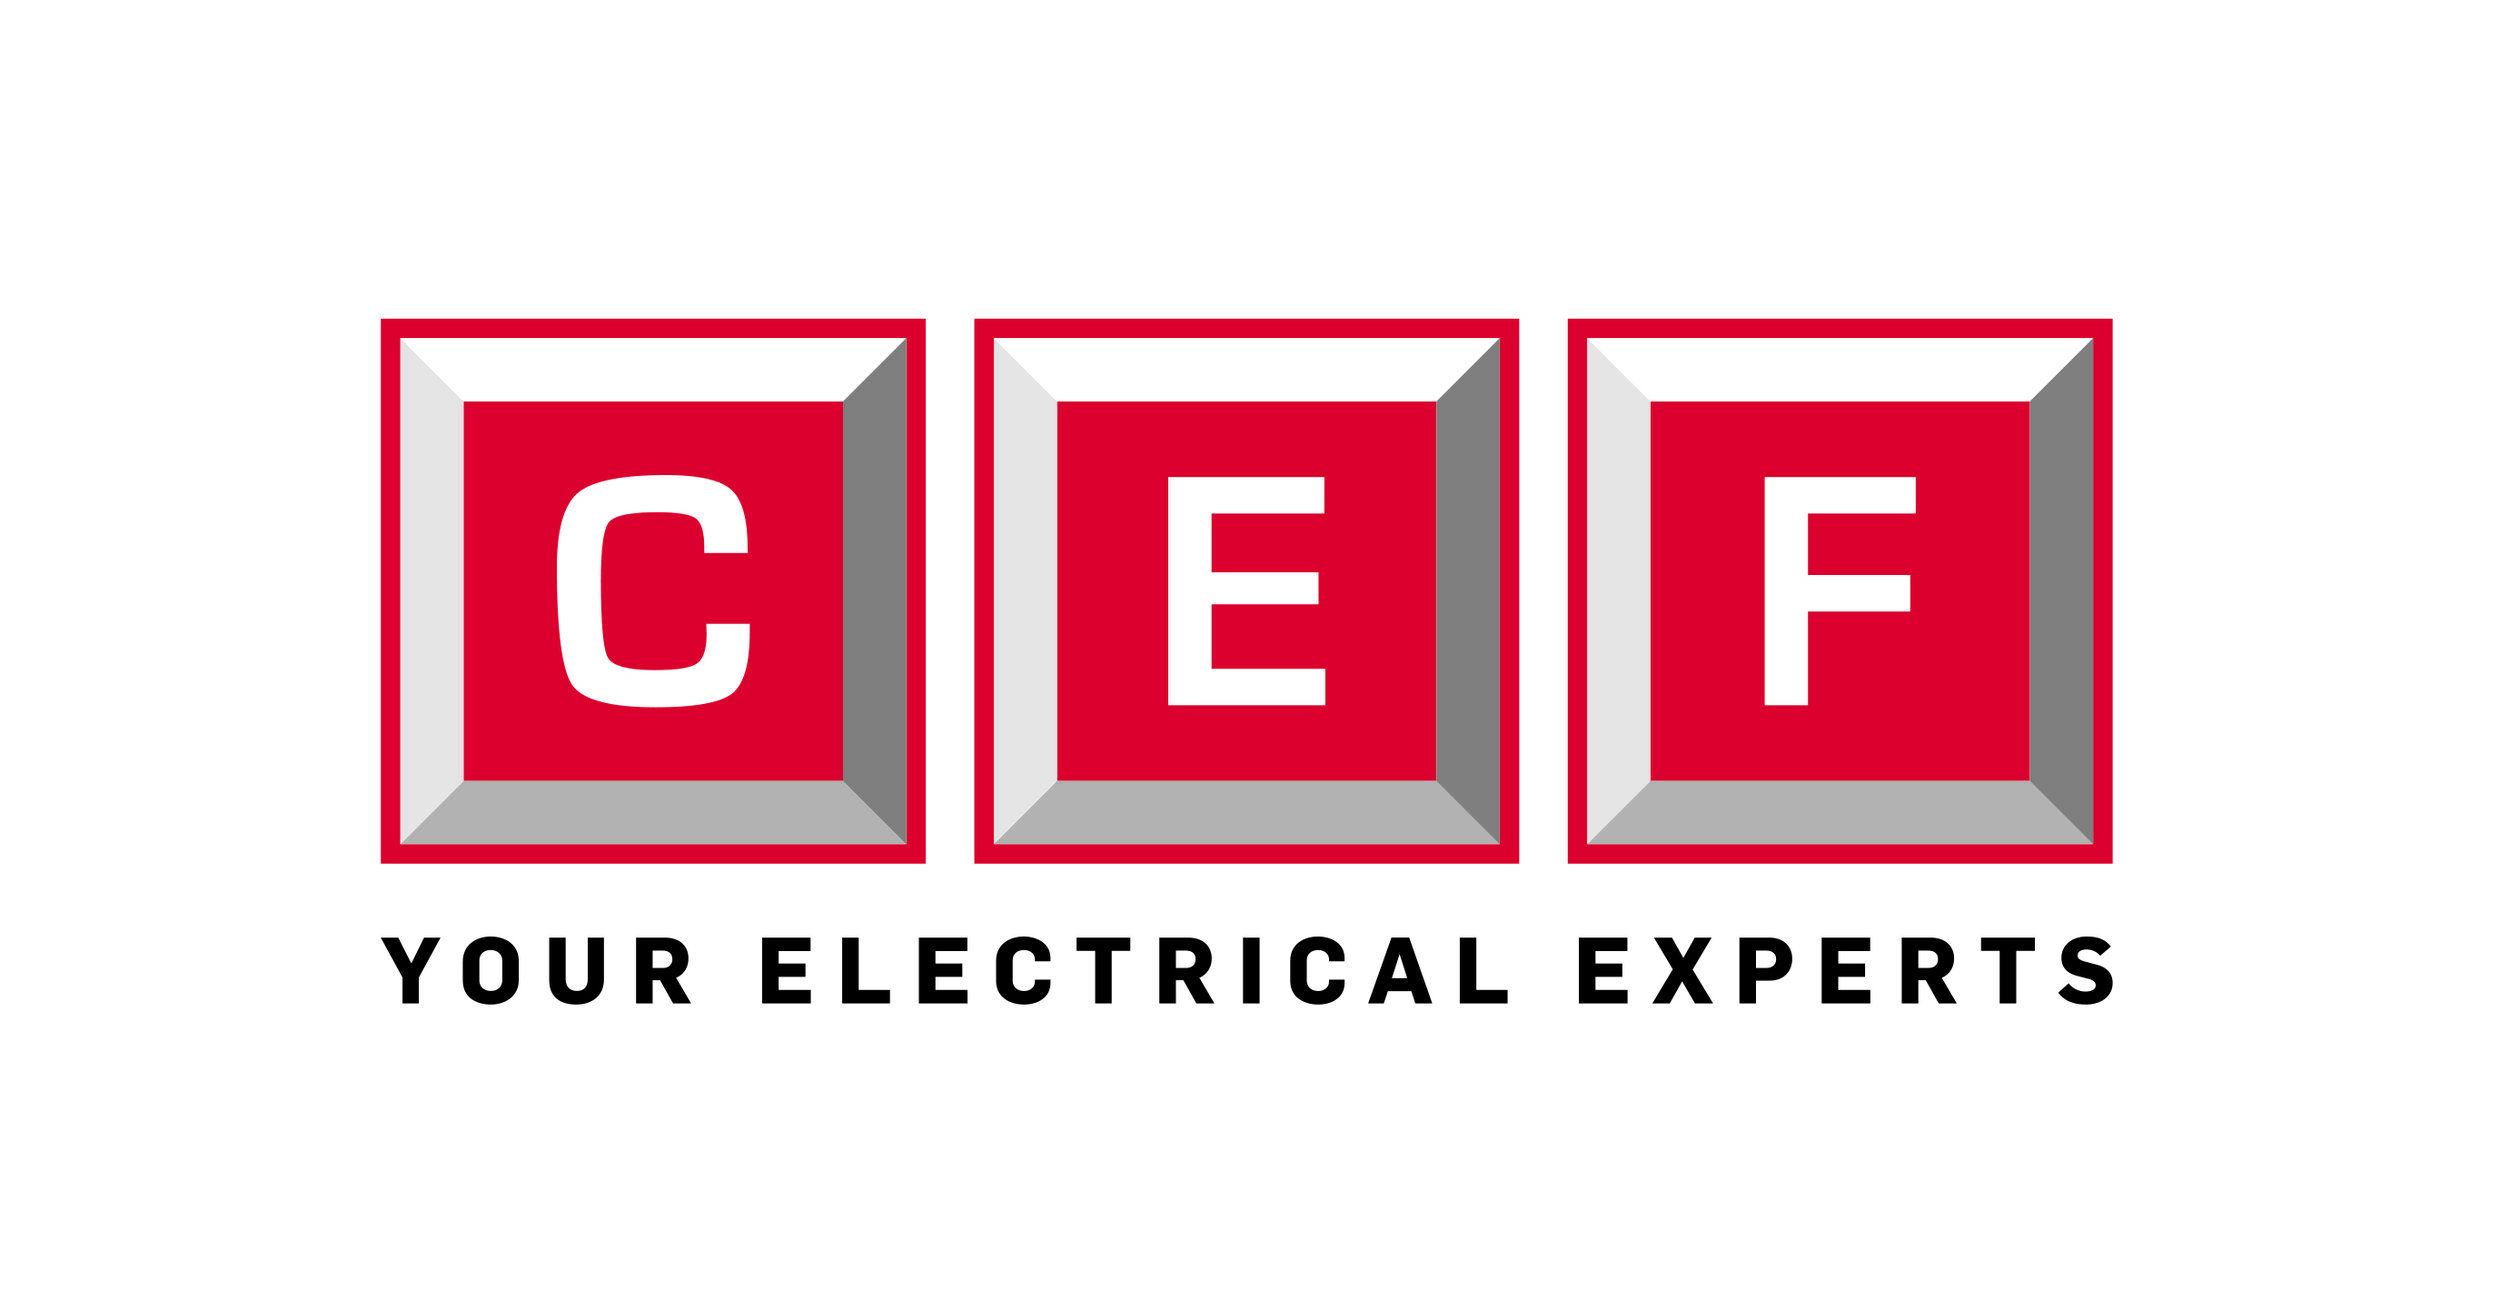 NEW-CEF-LOGO_with-strap-186.jpg